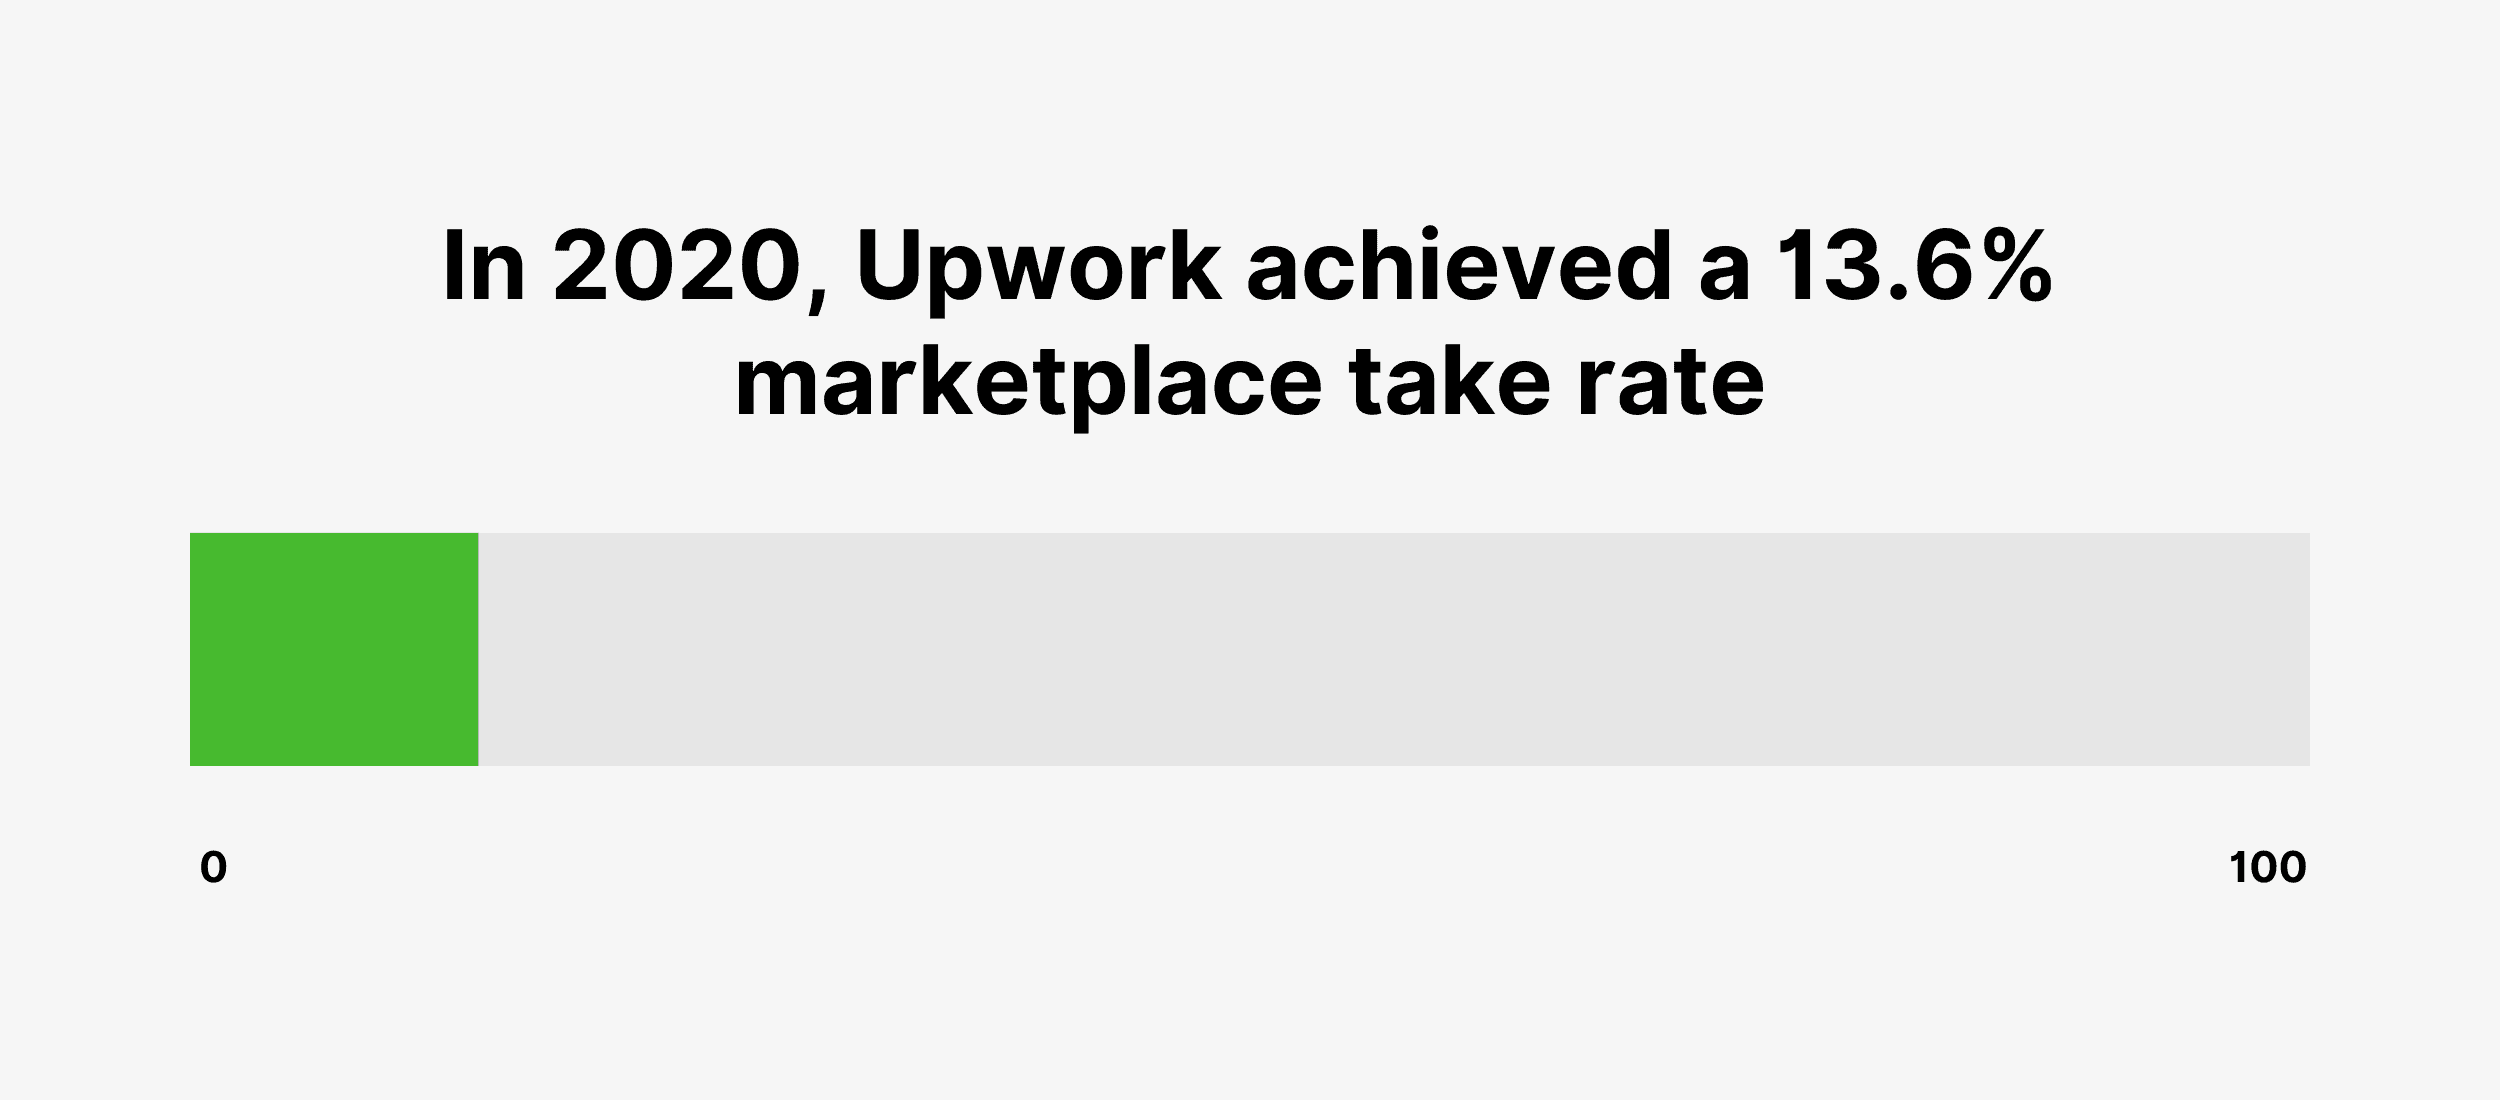 In 2020, Upwork achieved a 13.6% marketplace take rate